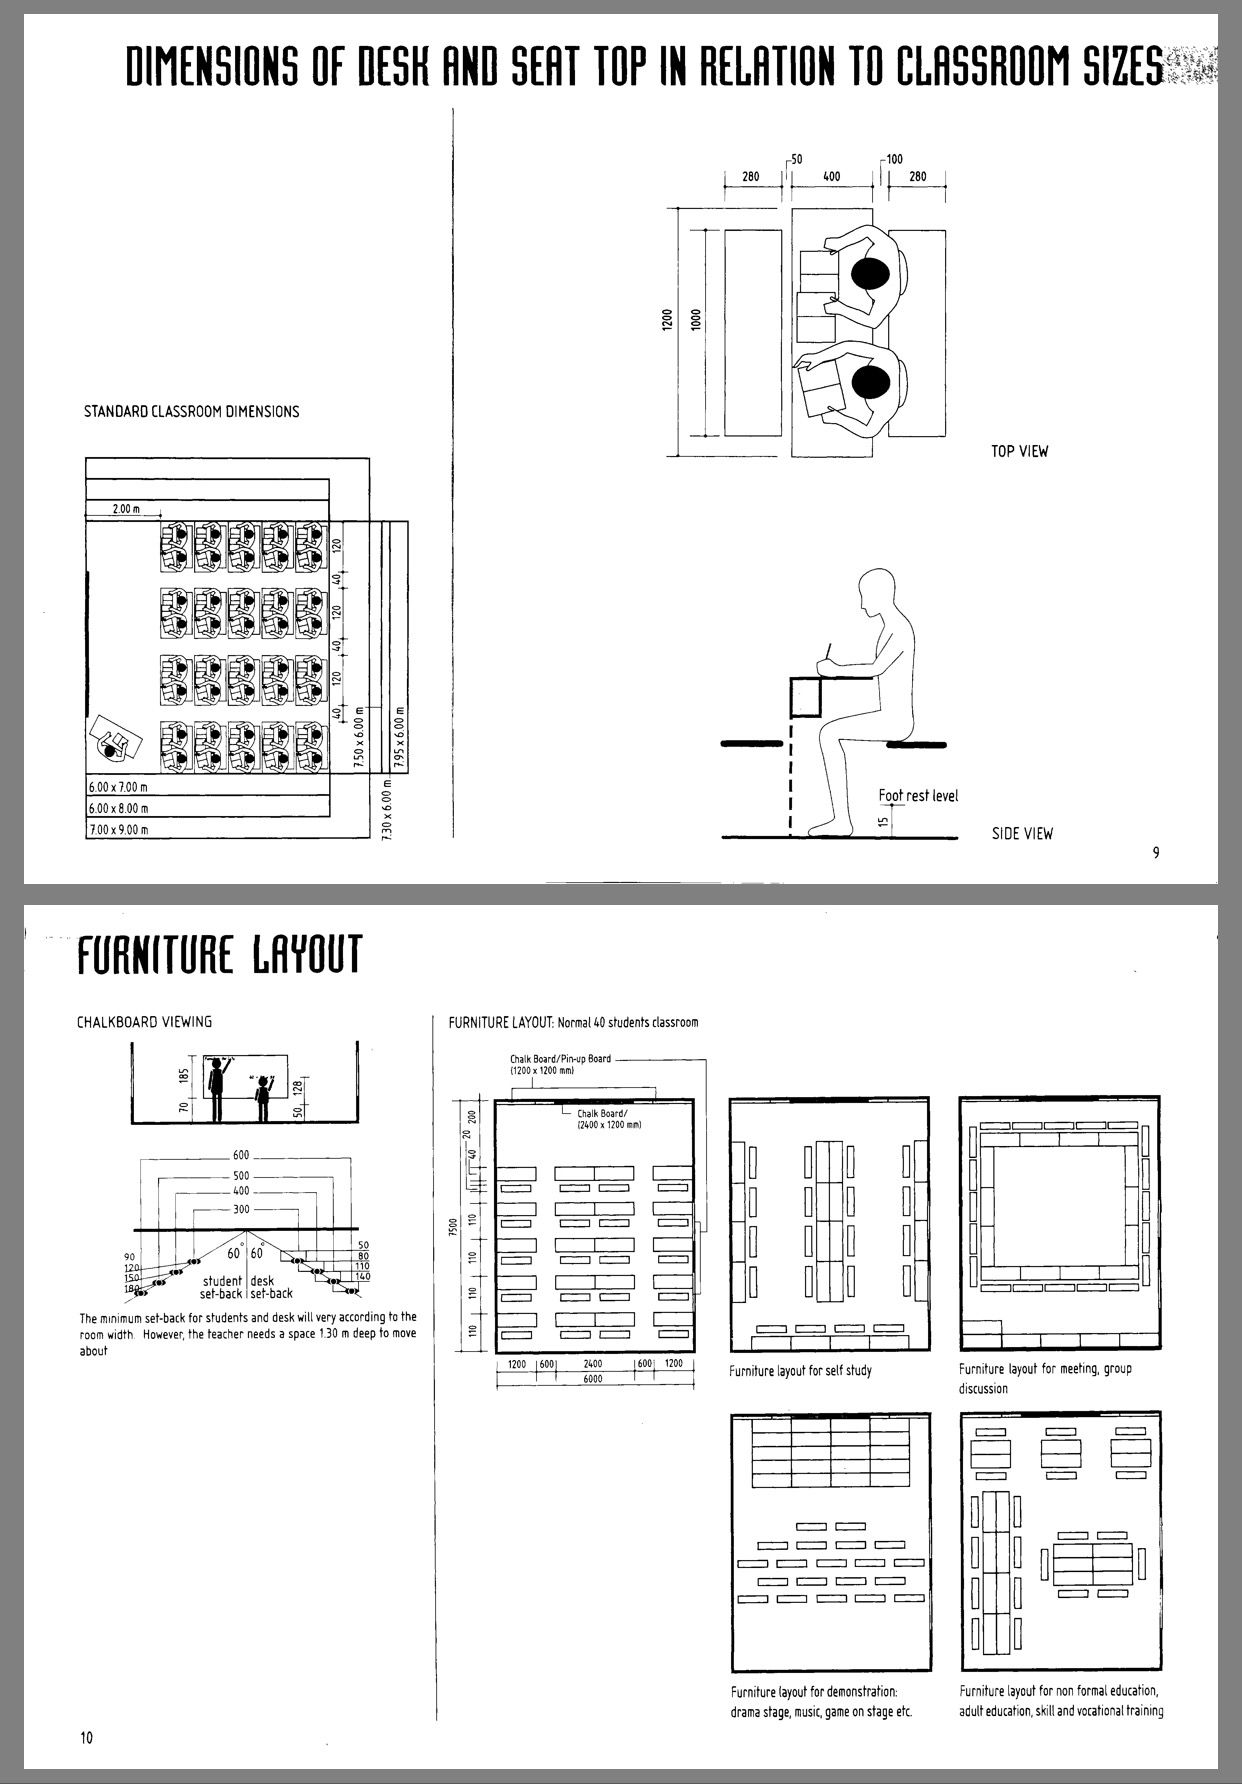 Classroom Layout Dimensions ~ Classrooms dimensions high school project pinterest